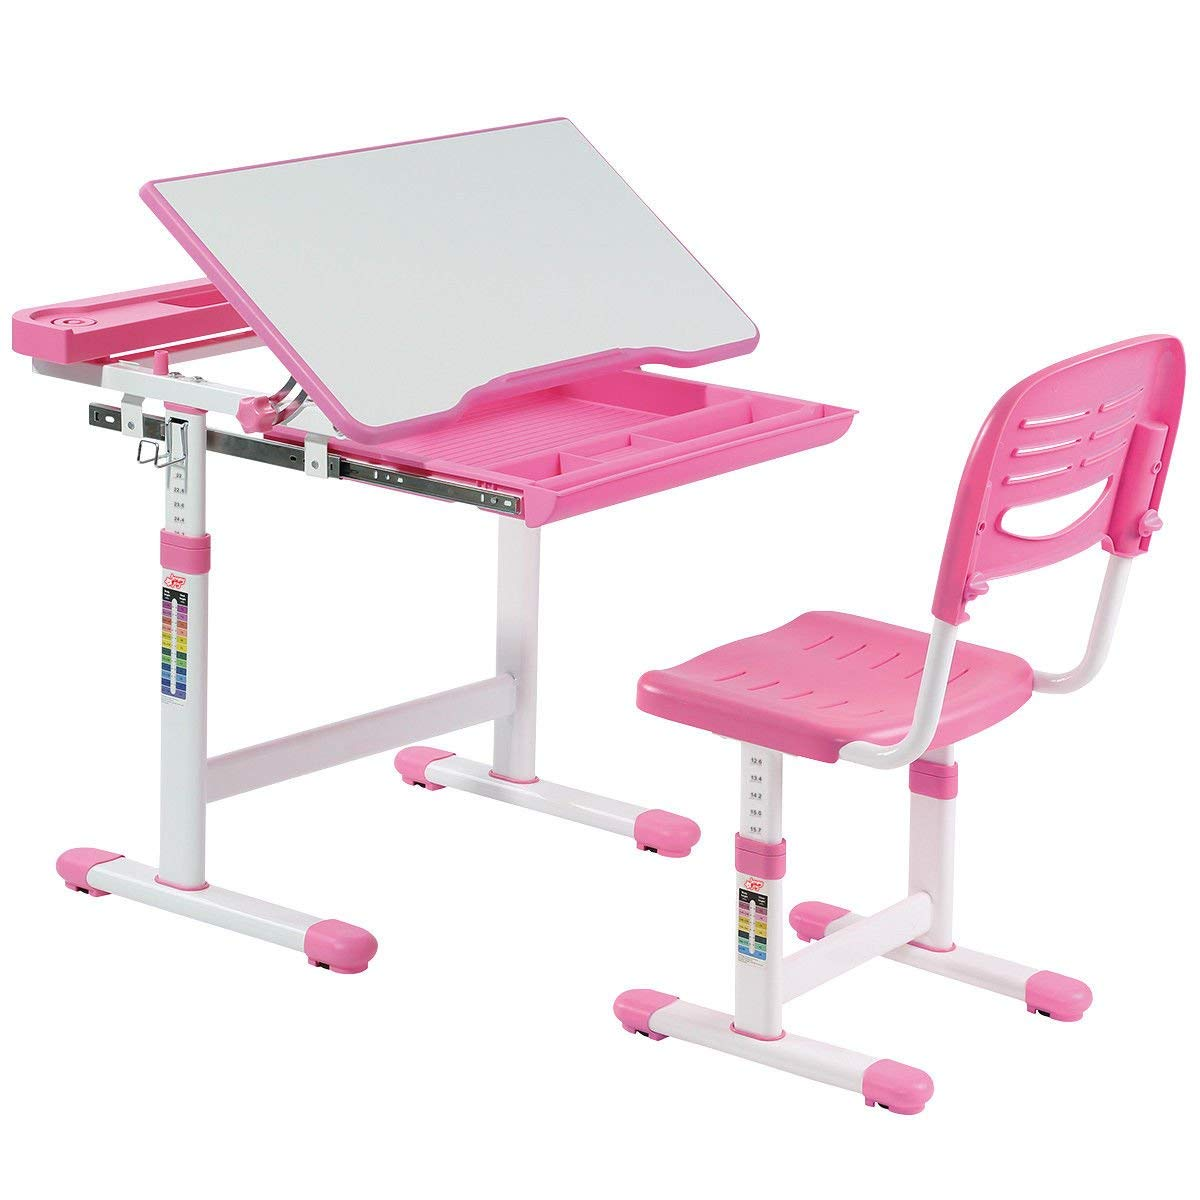 AyaMastro Pink Children Desk Set Kids Multifunctional Drawing Table w/Adjustable Height & Chair